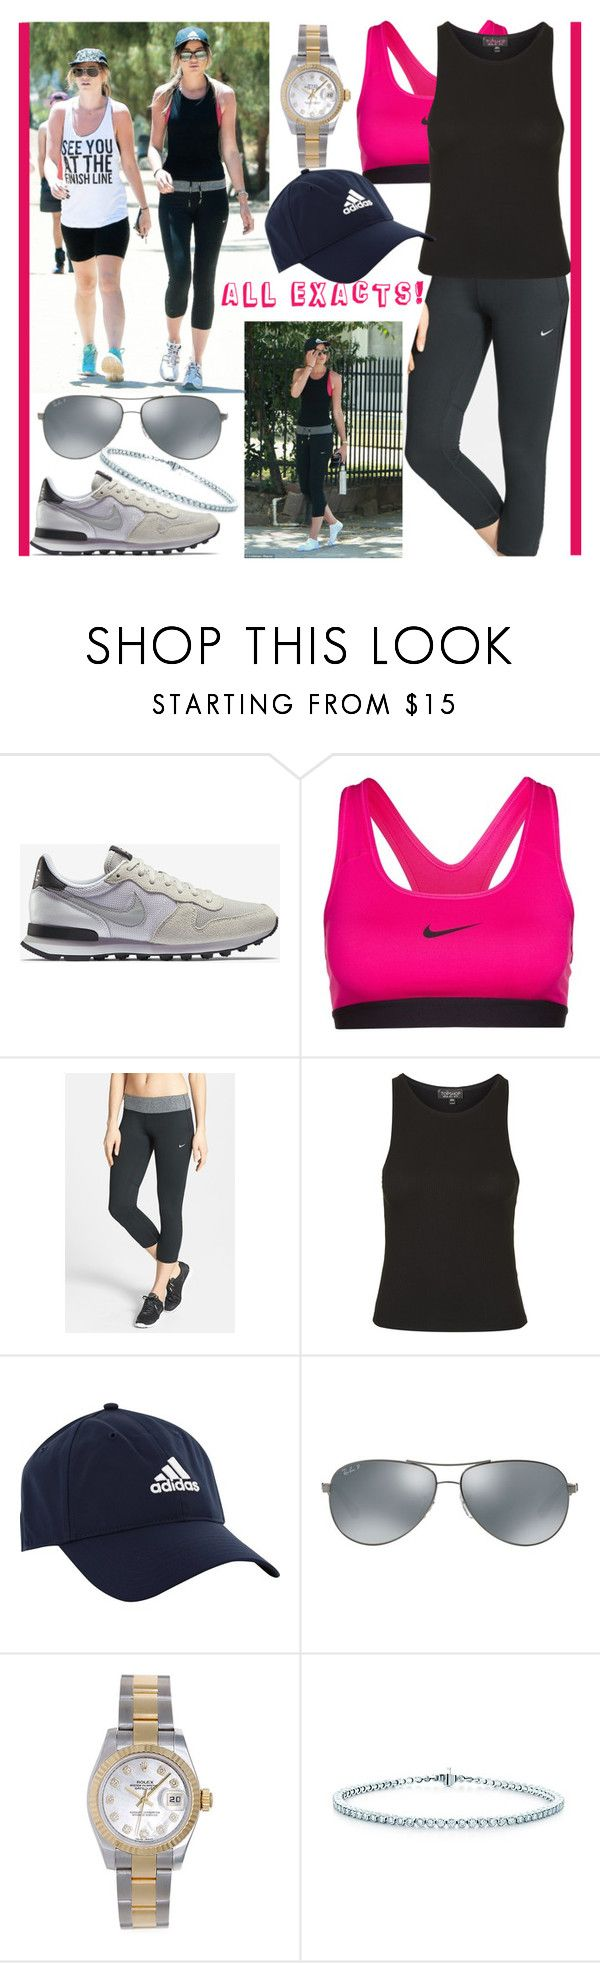 """ELEANOR CALDER INSPIRED OUTFIT <3"" by costina-raftu ❤ liked on Polyvore featuring NIKE, Topshop, adidas Golf, Ray-Ban, Rolex and Tiffany & Co."